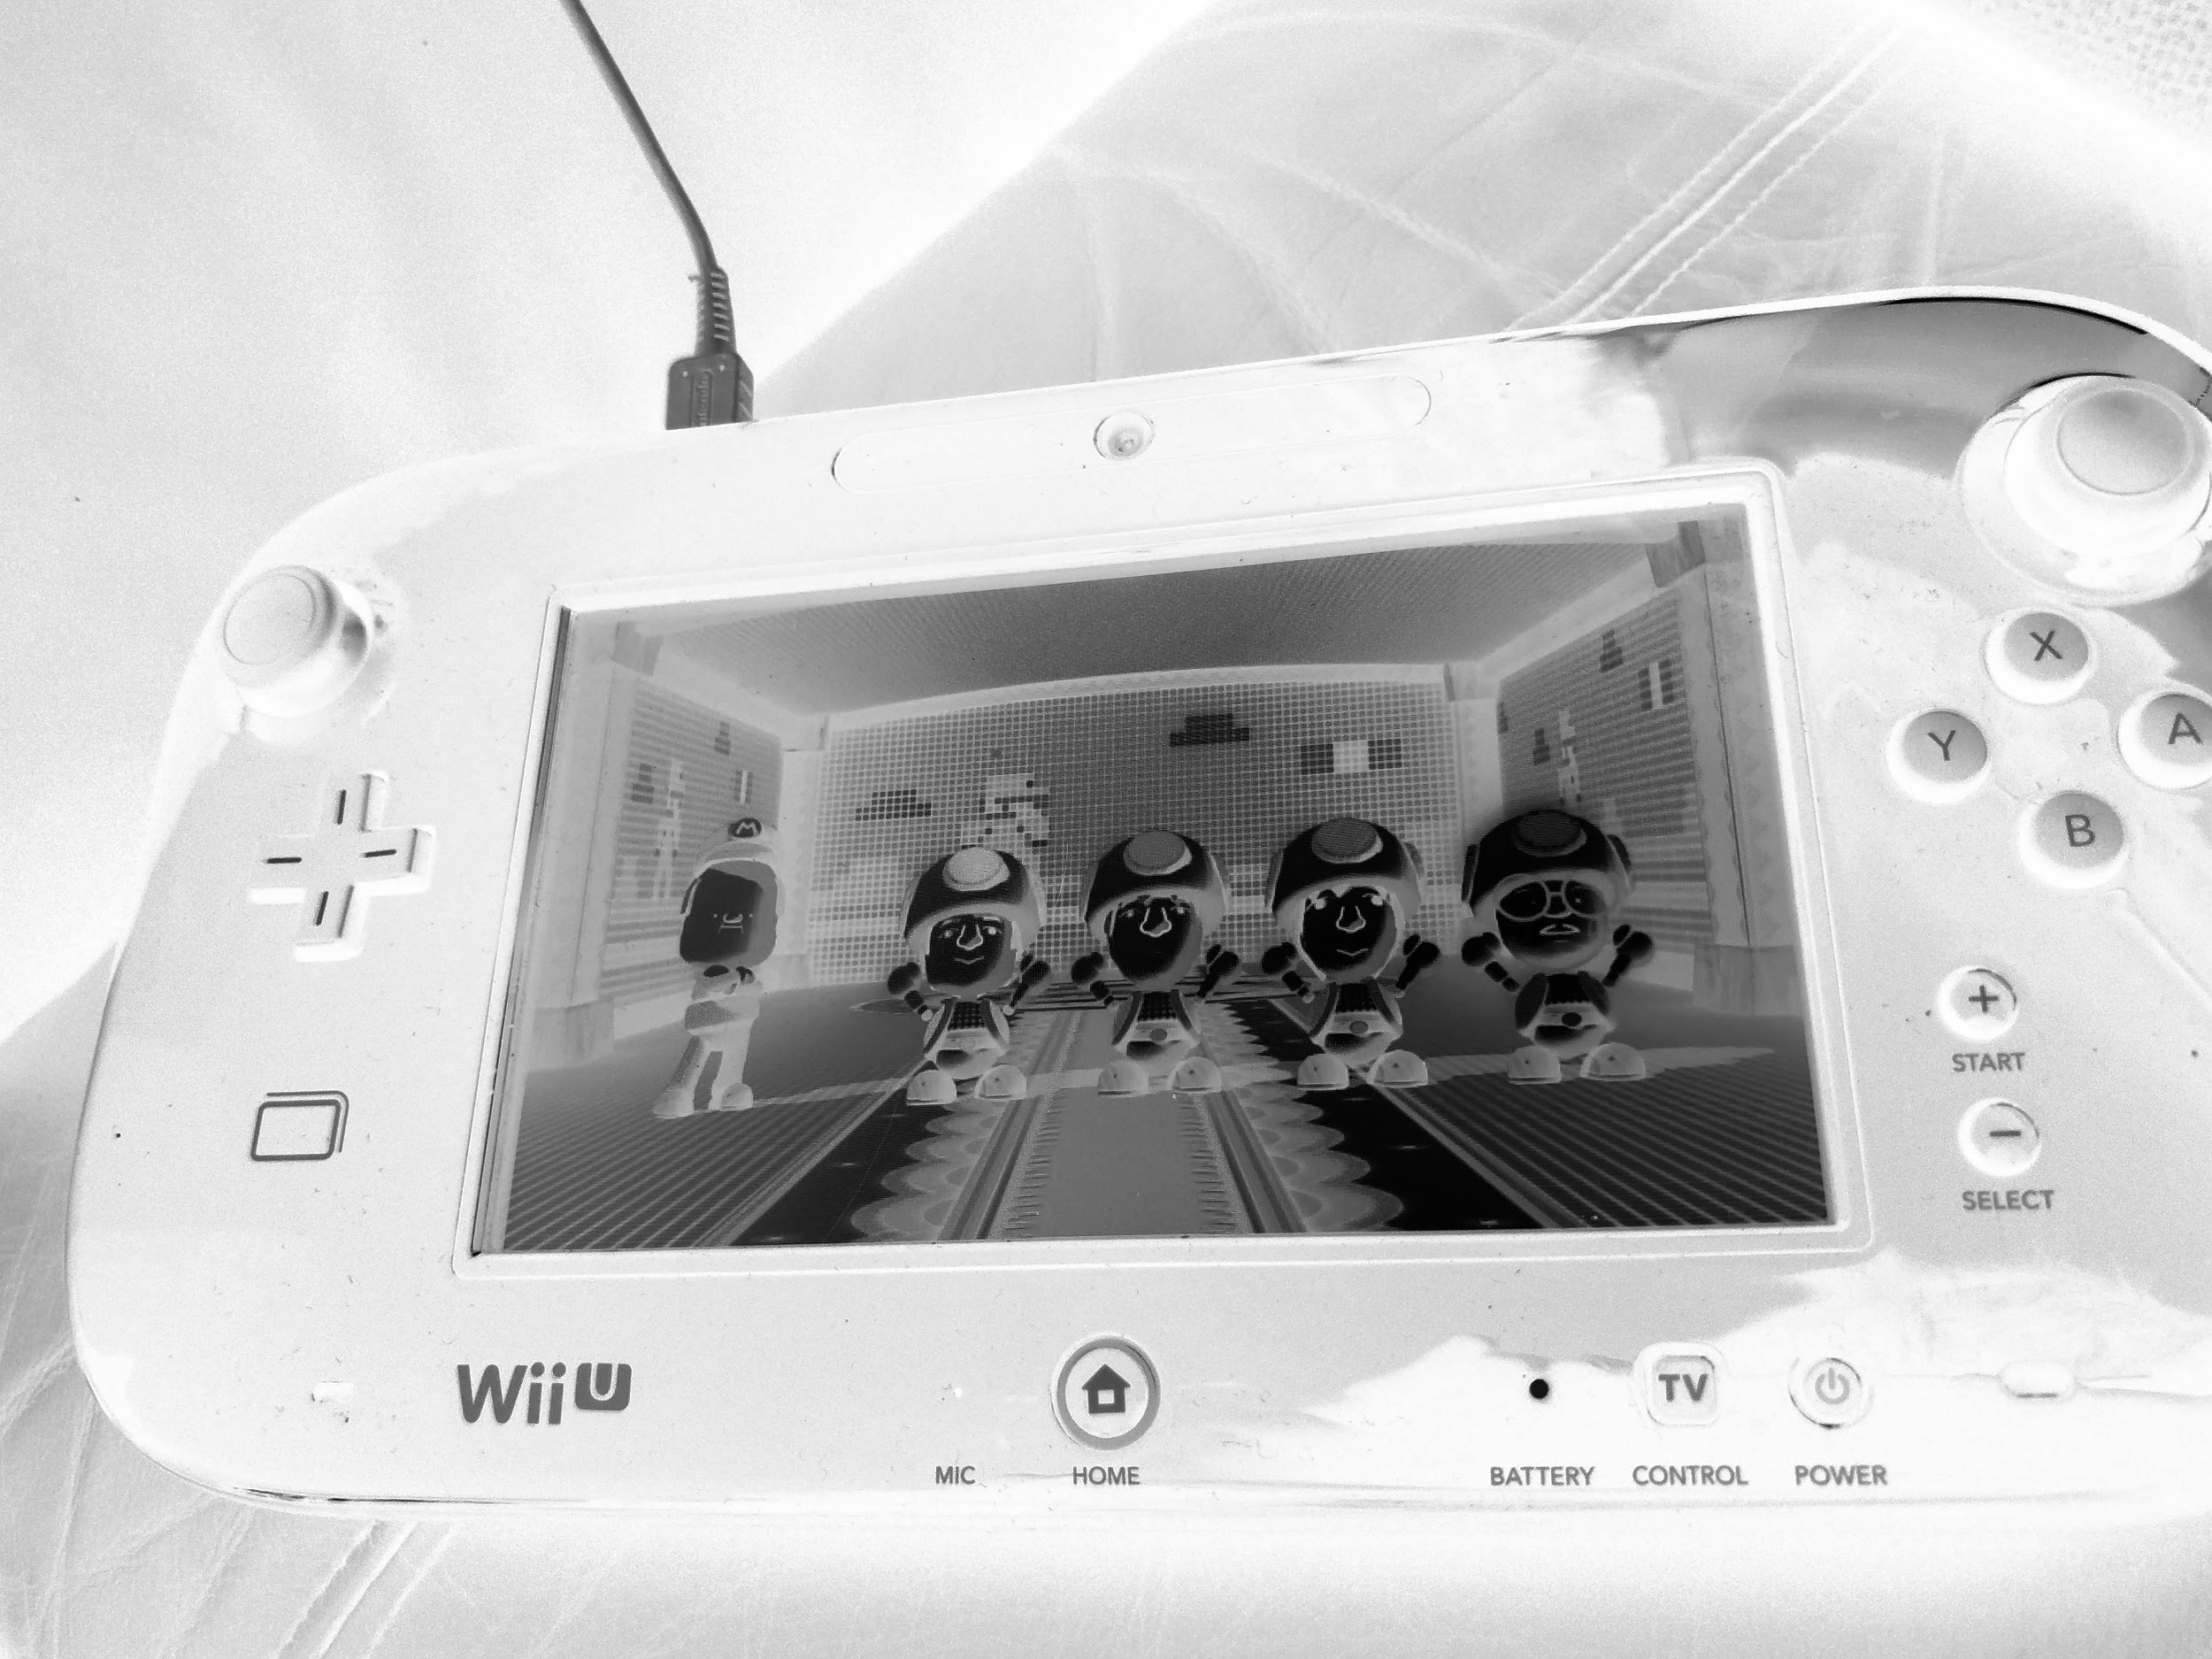 An infared image of a Wii U screen showing a collection of Mii toads in a room.